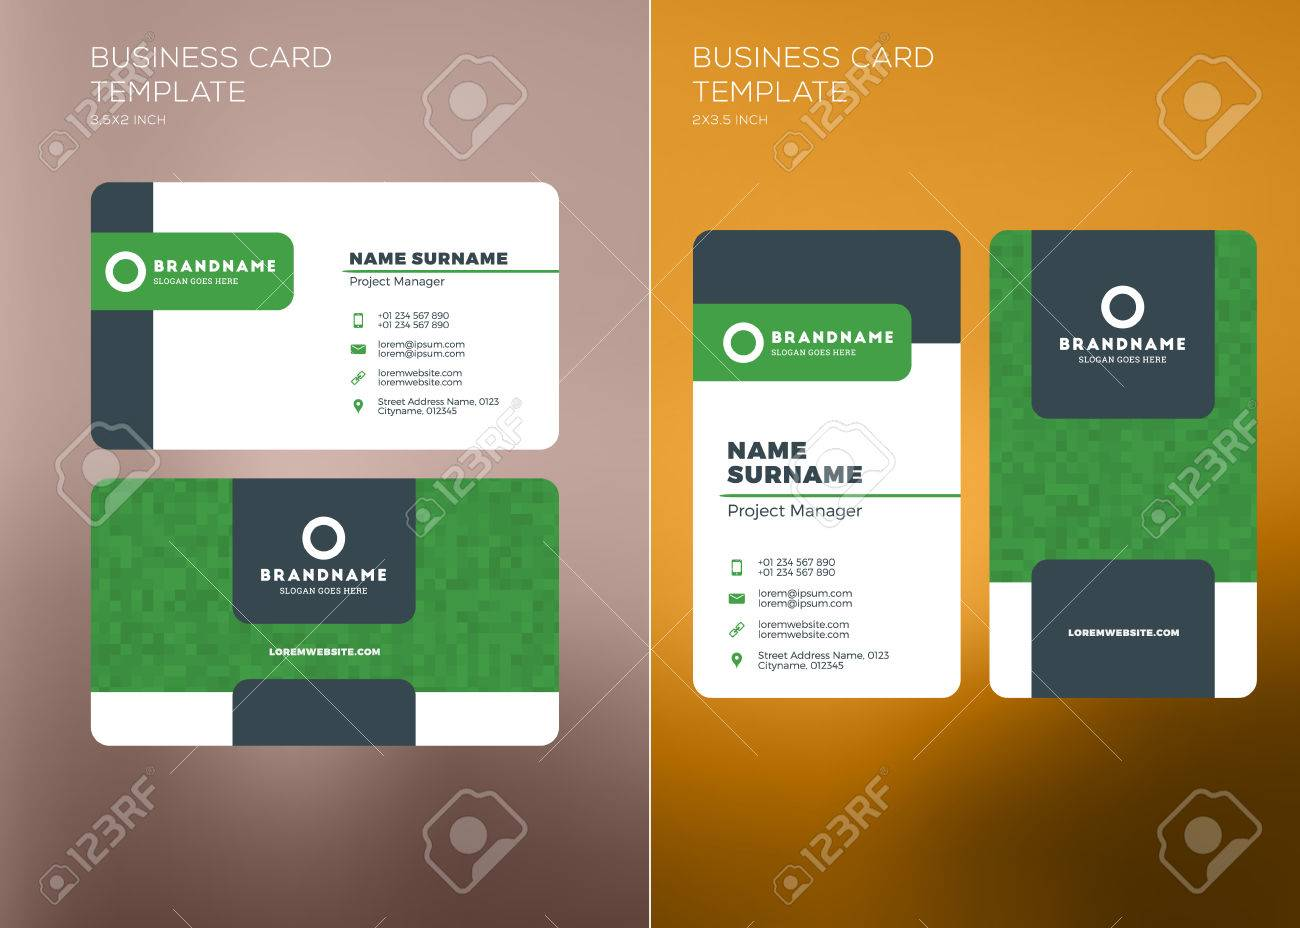 Corporate business card print template personal visiting card corporate business card print template personal visiting card with company logo vertical and horizontal reheart Gallery